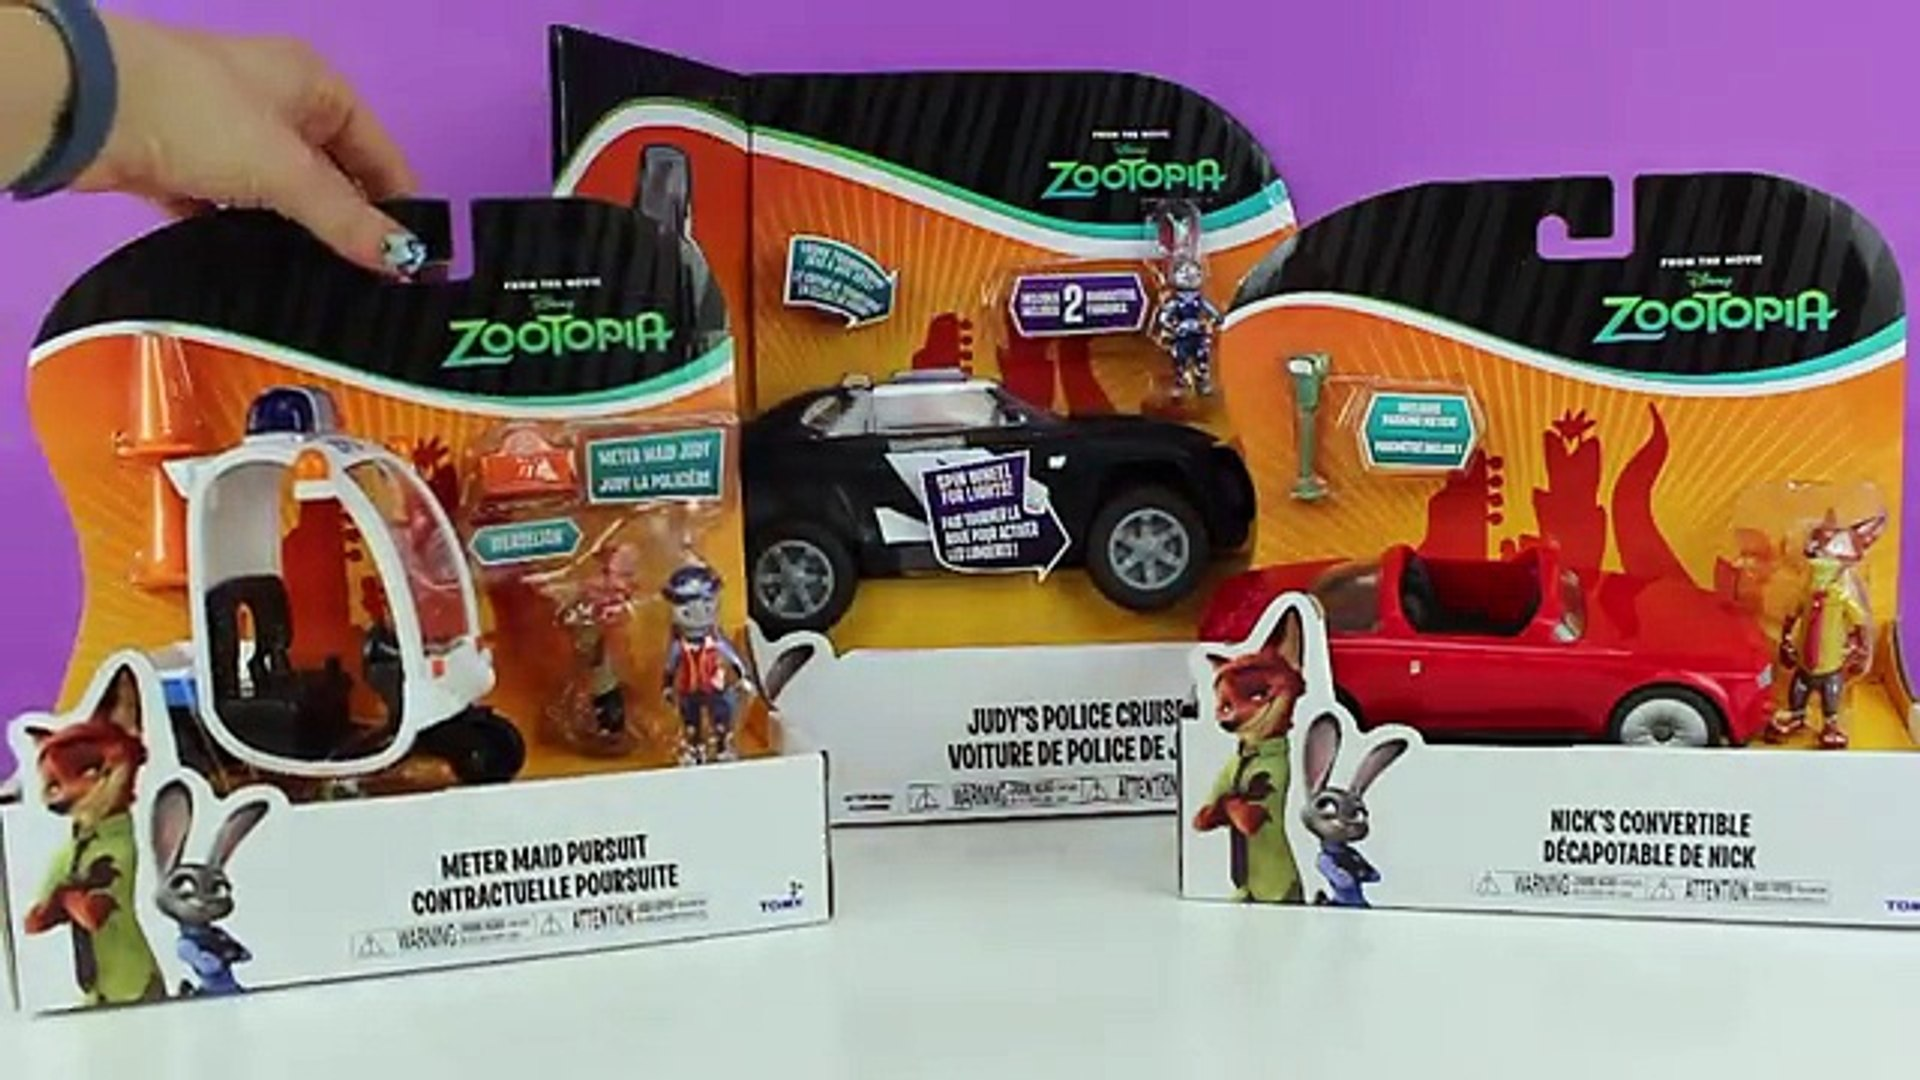 Zootopia toy stories! Zootropolis Kids videos with toys and toy cars. Car repair!